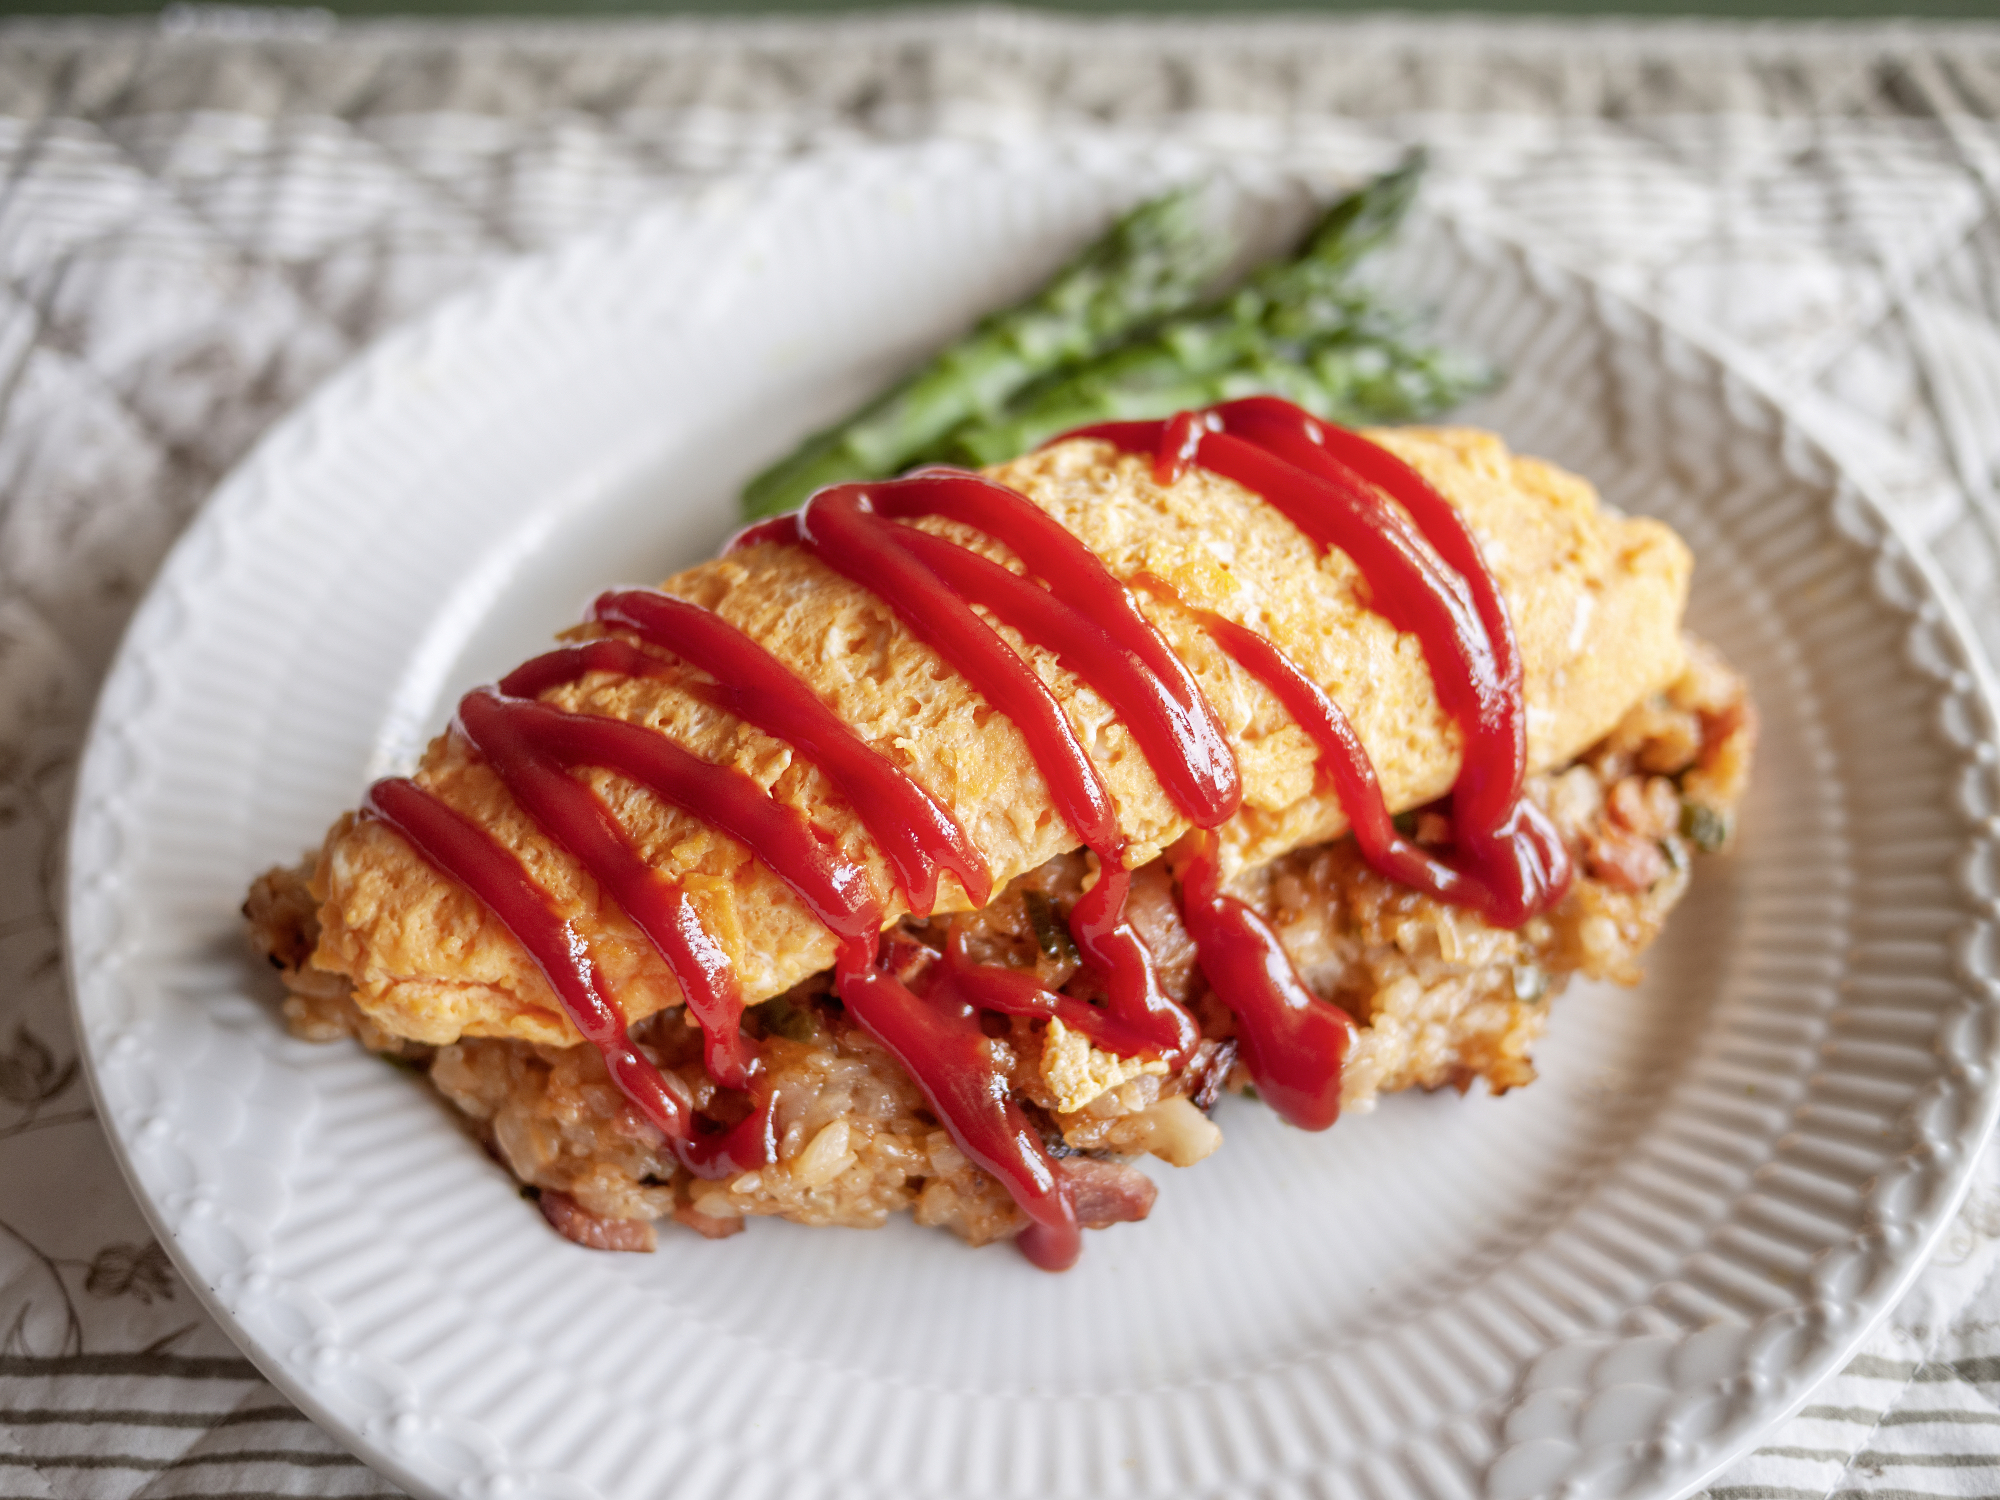 Just as film director Juzo Itami ordered: In this omurice (rice omelette), a pile of chicken stir-fried rice is topped with a soft-set omelette and tangy ketchup. | MAKIKO ITOH